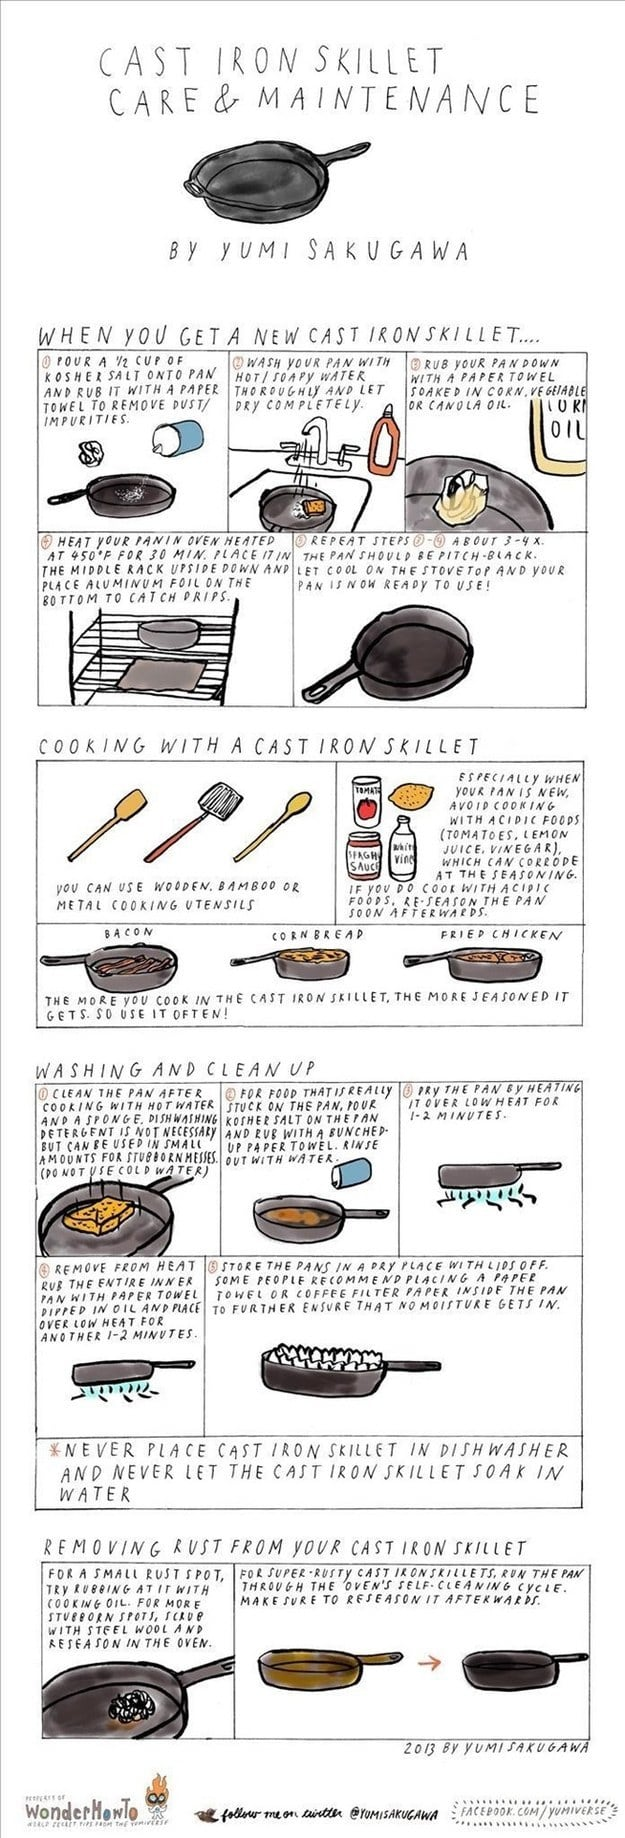 For cooking with and maintaining a cast iron skillet.